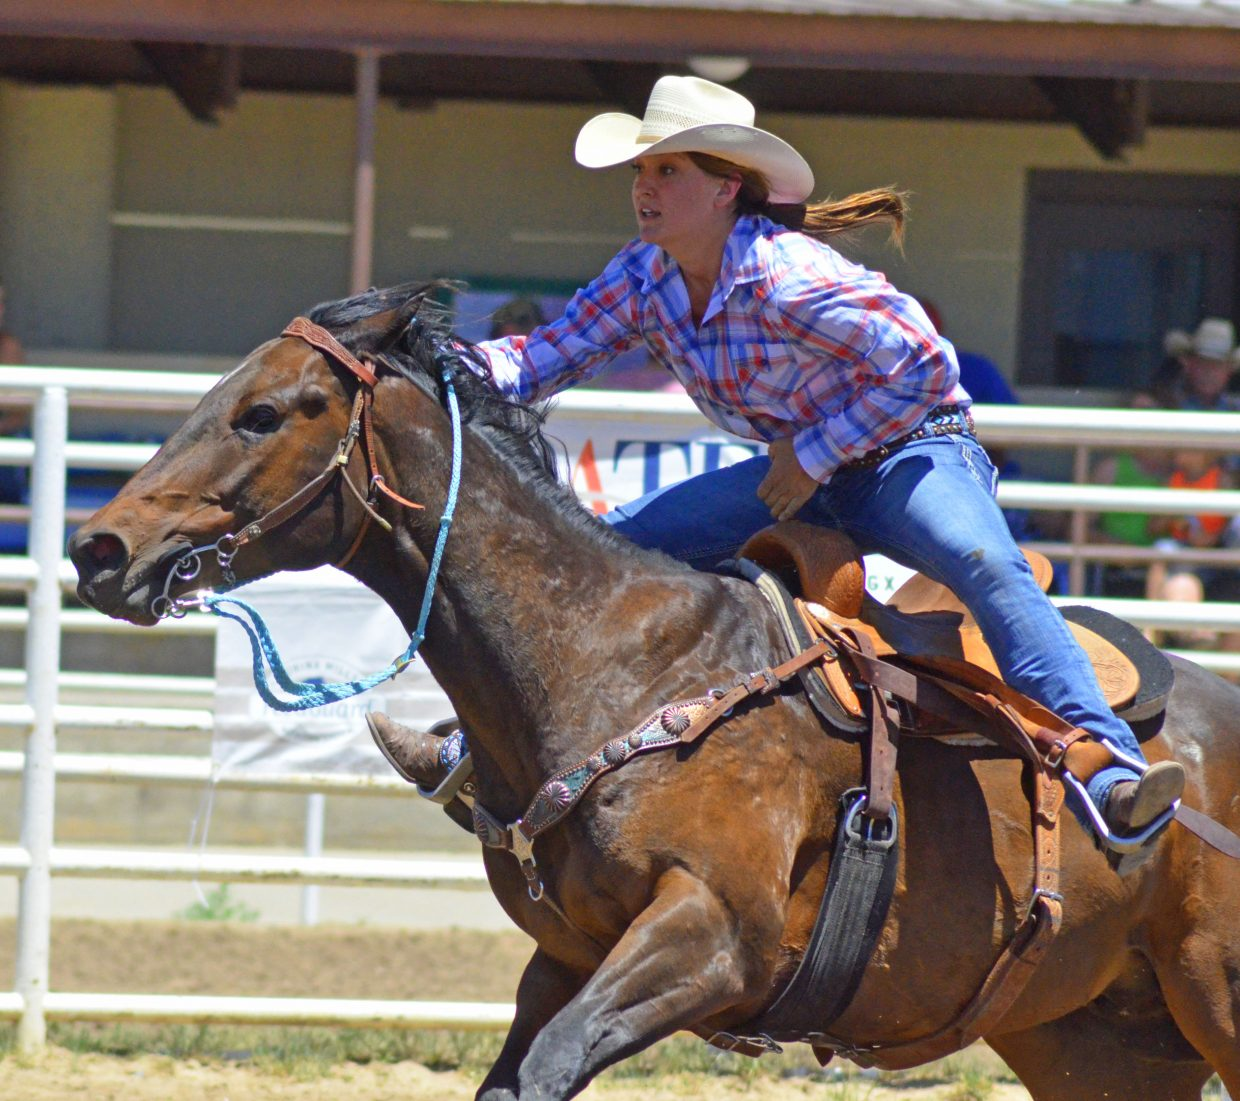 Steamboat Springs rider Haley Scheer and horse Major Hot Streak speed through the course during the Tri-State Barrel Racing Classic Saturday at Moffat County Fairgrounds. Scheer, riding three different horses, won multiple honors in the open segment of the event.